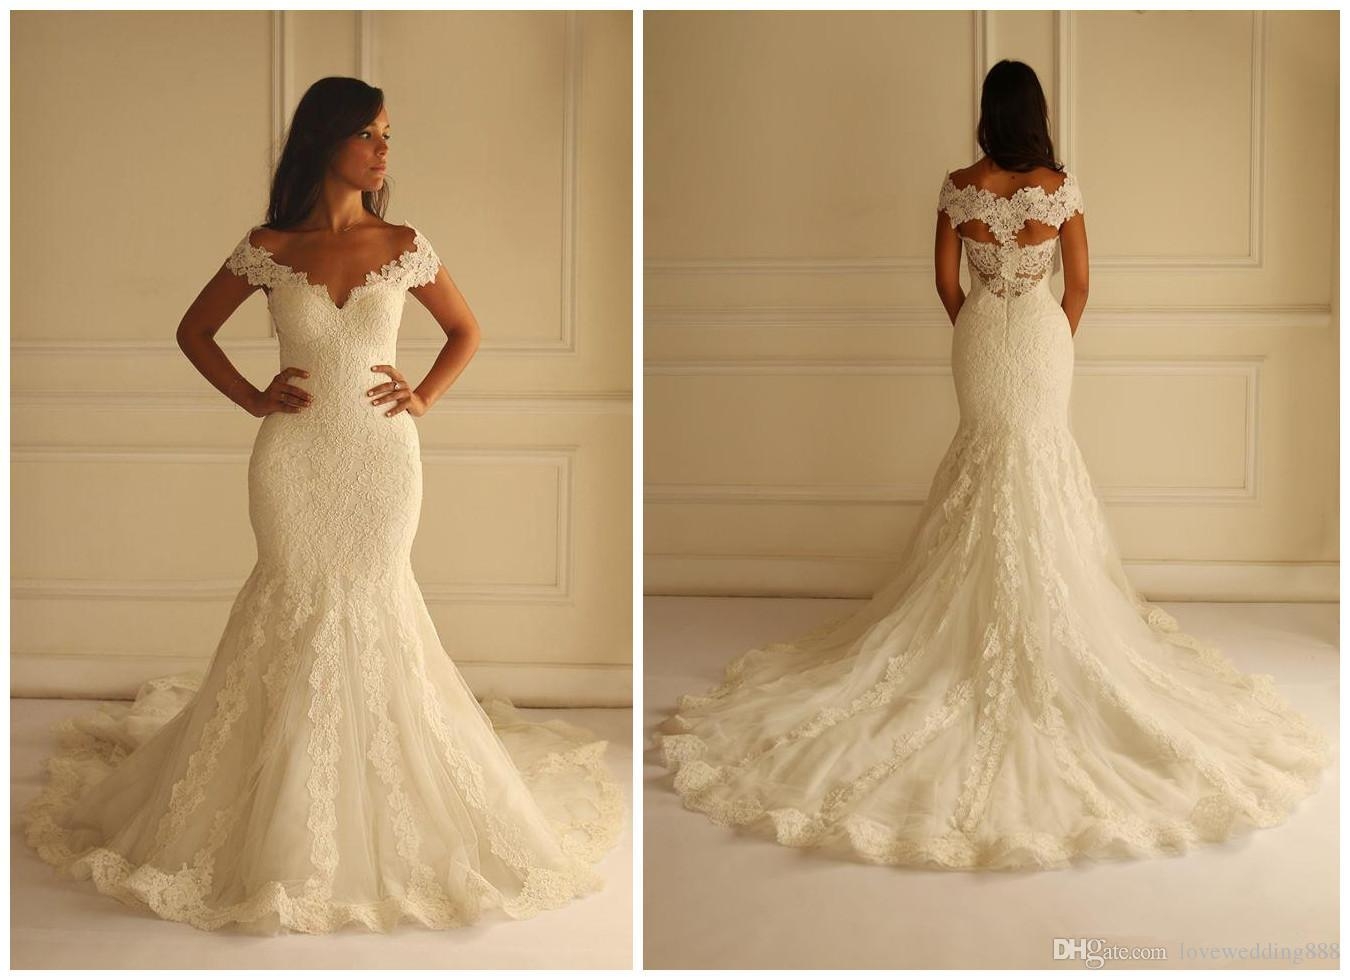 Mermaid Wedding Gowns With Sleeves: Elegant 2015 Wedding Dresses Mermaid V Neck Wedding Gowns